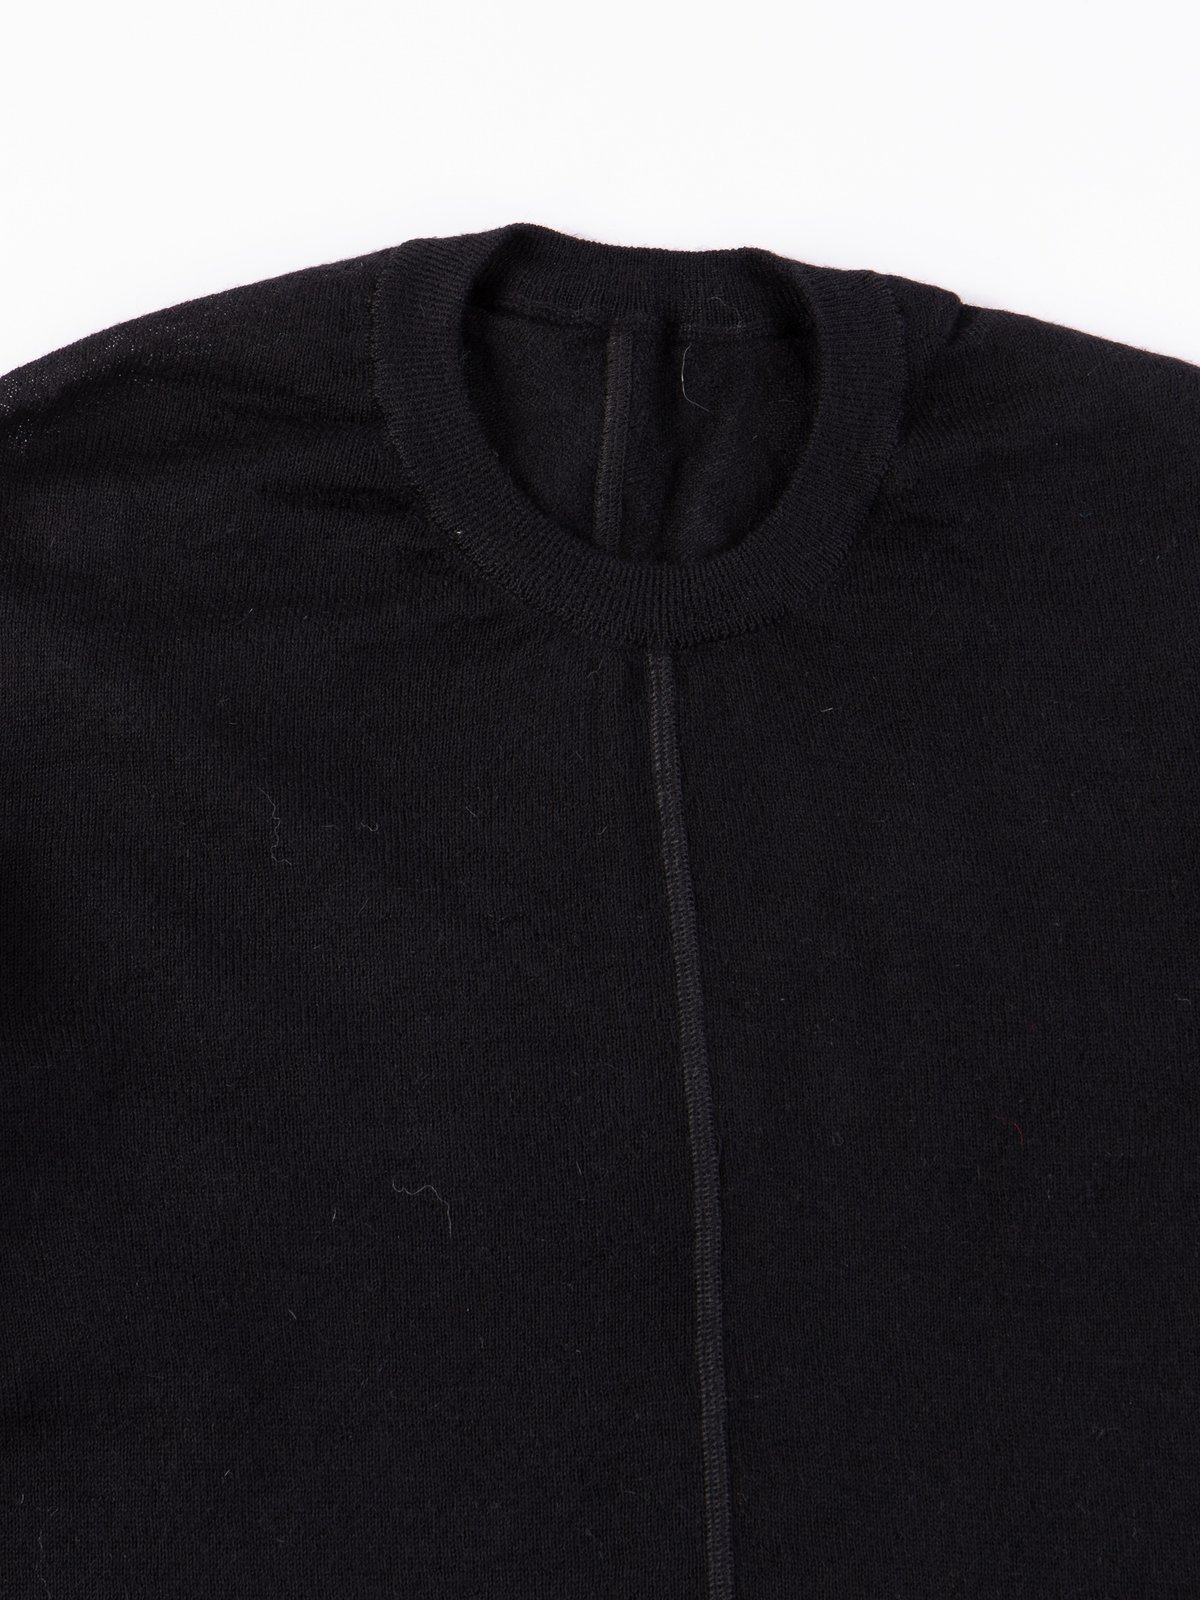 S23–AK Black Cashllama Long Sleeve Sweater - Image 2